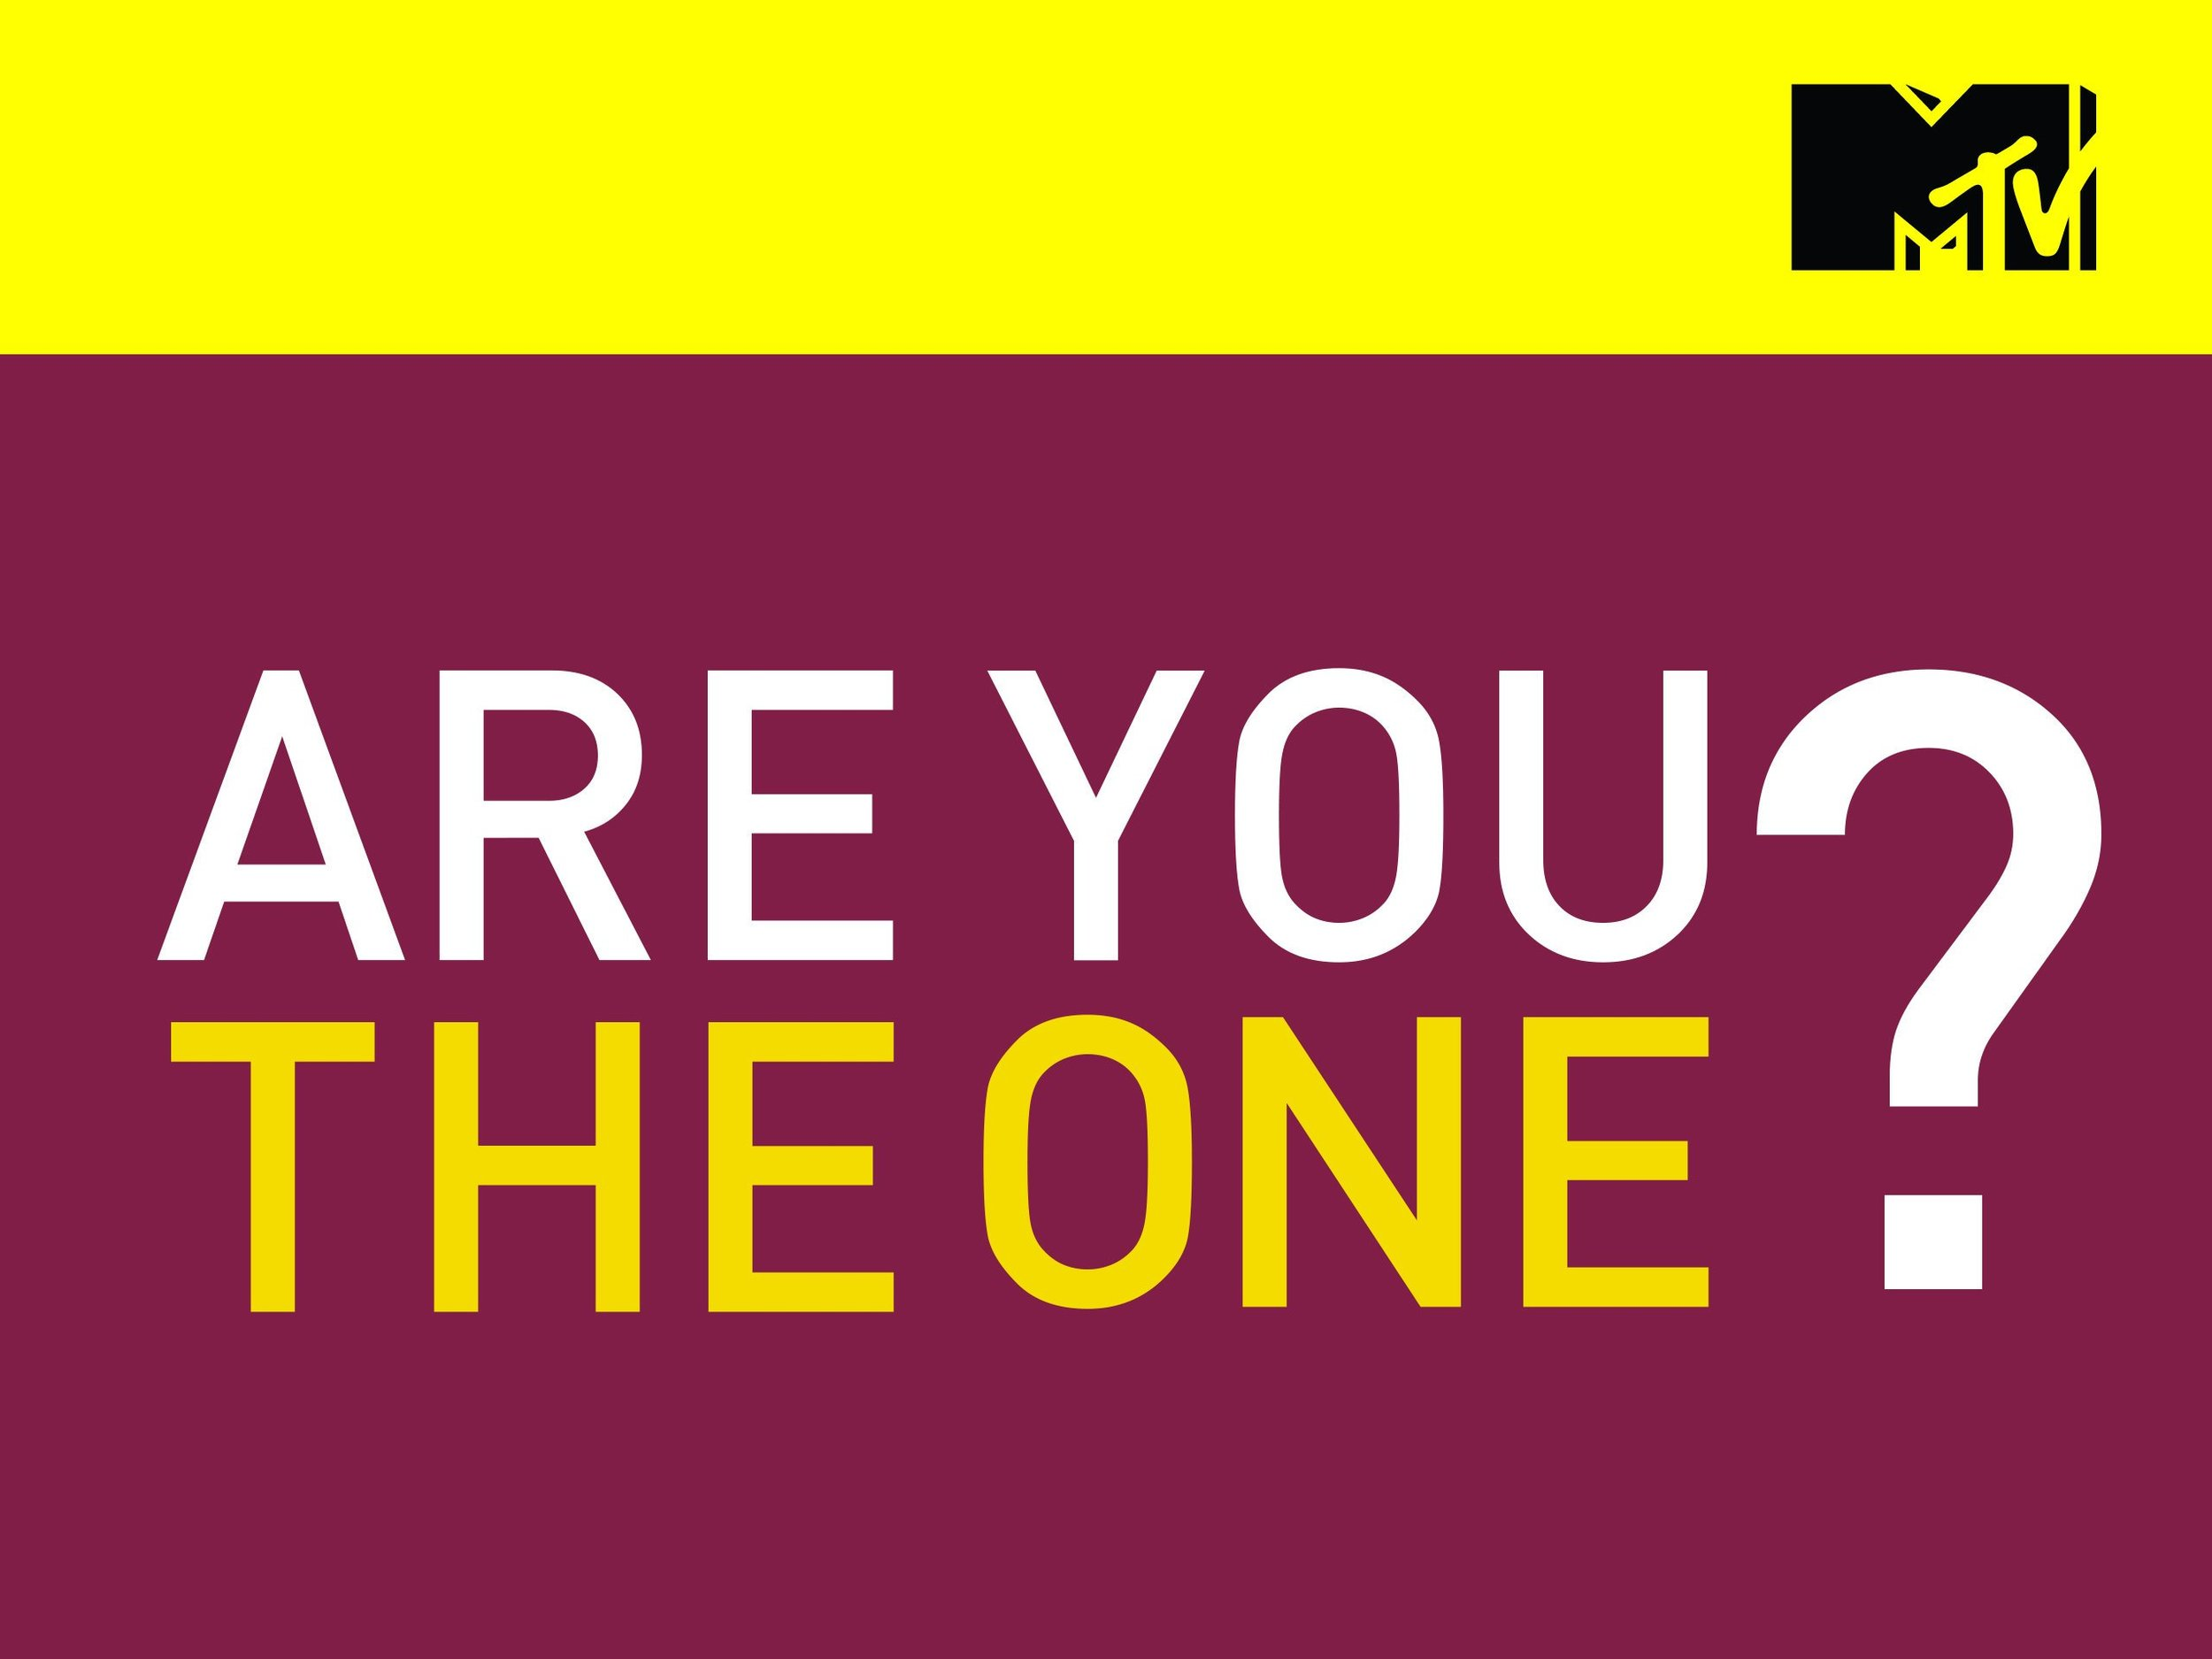 mtv's Are you the one? - Casting Editor and Assistant Editor on Season 1, 2013-2014